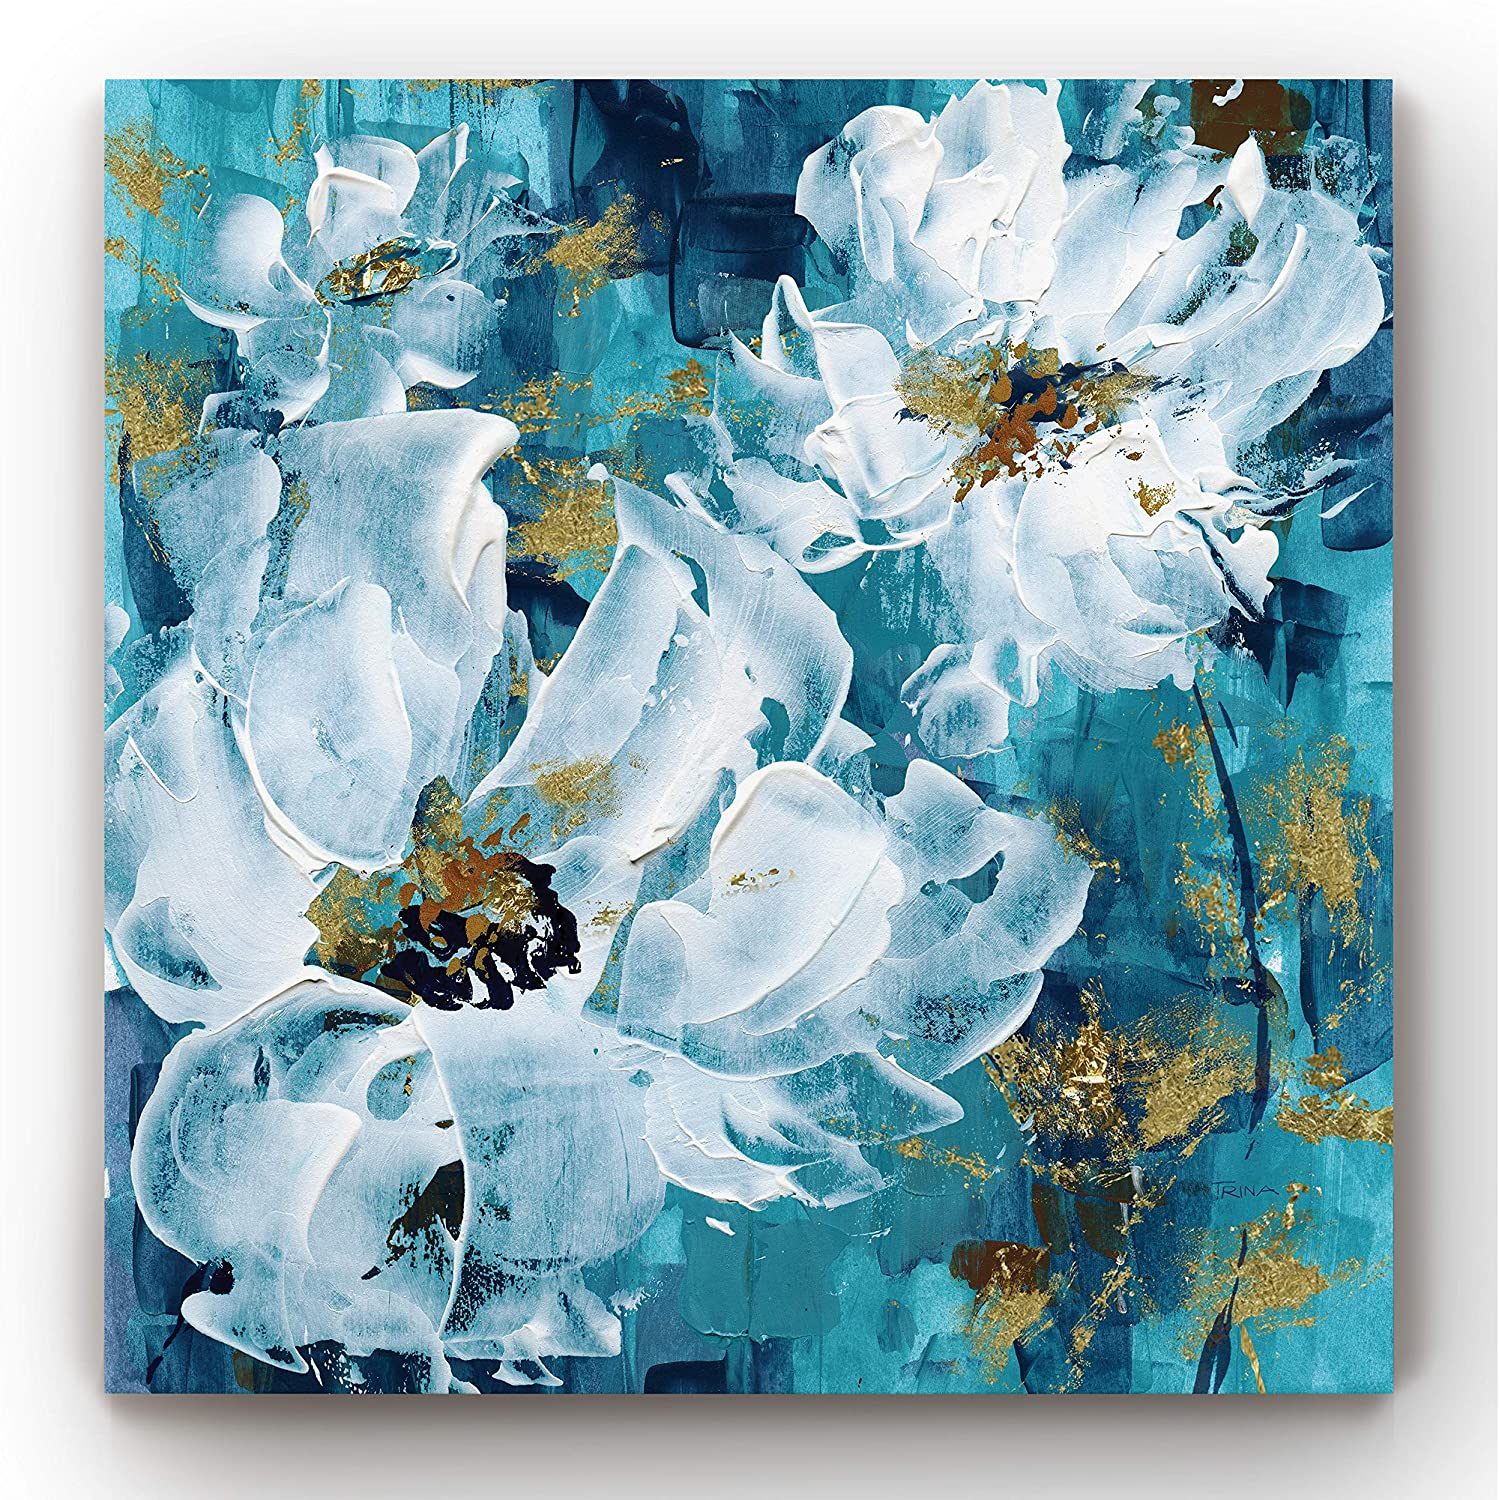 Floral Wall Art, Wall Décor Canvas, Classic, Geometric, Abstract, Transitional, & Country Chic, Ready to Hang - Tango Trio 24X24